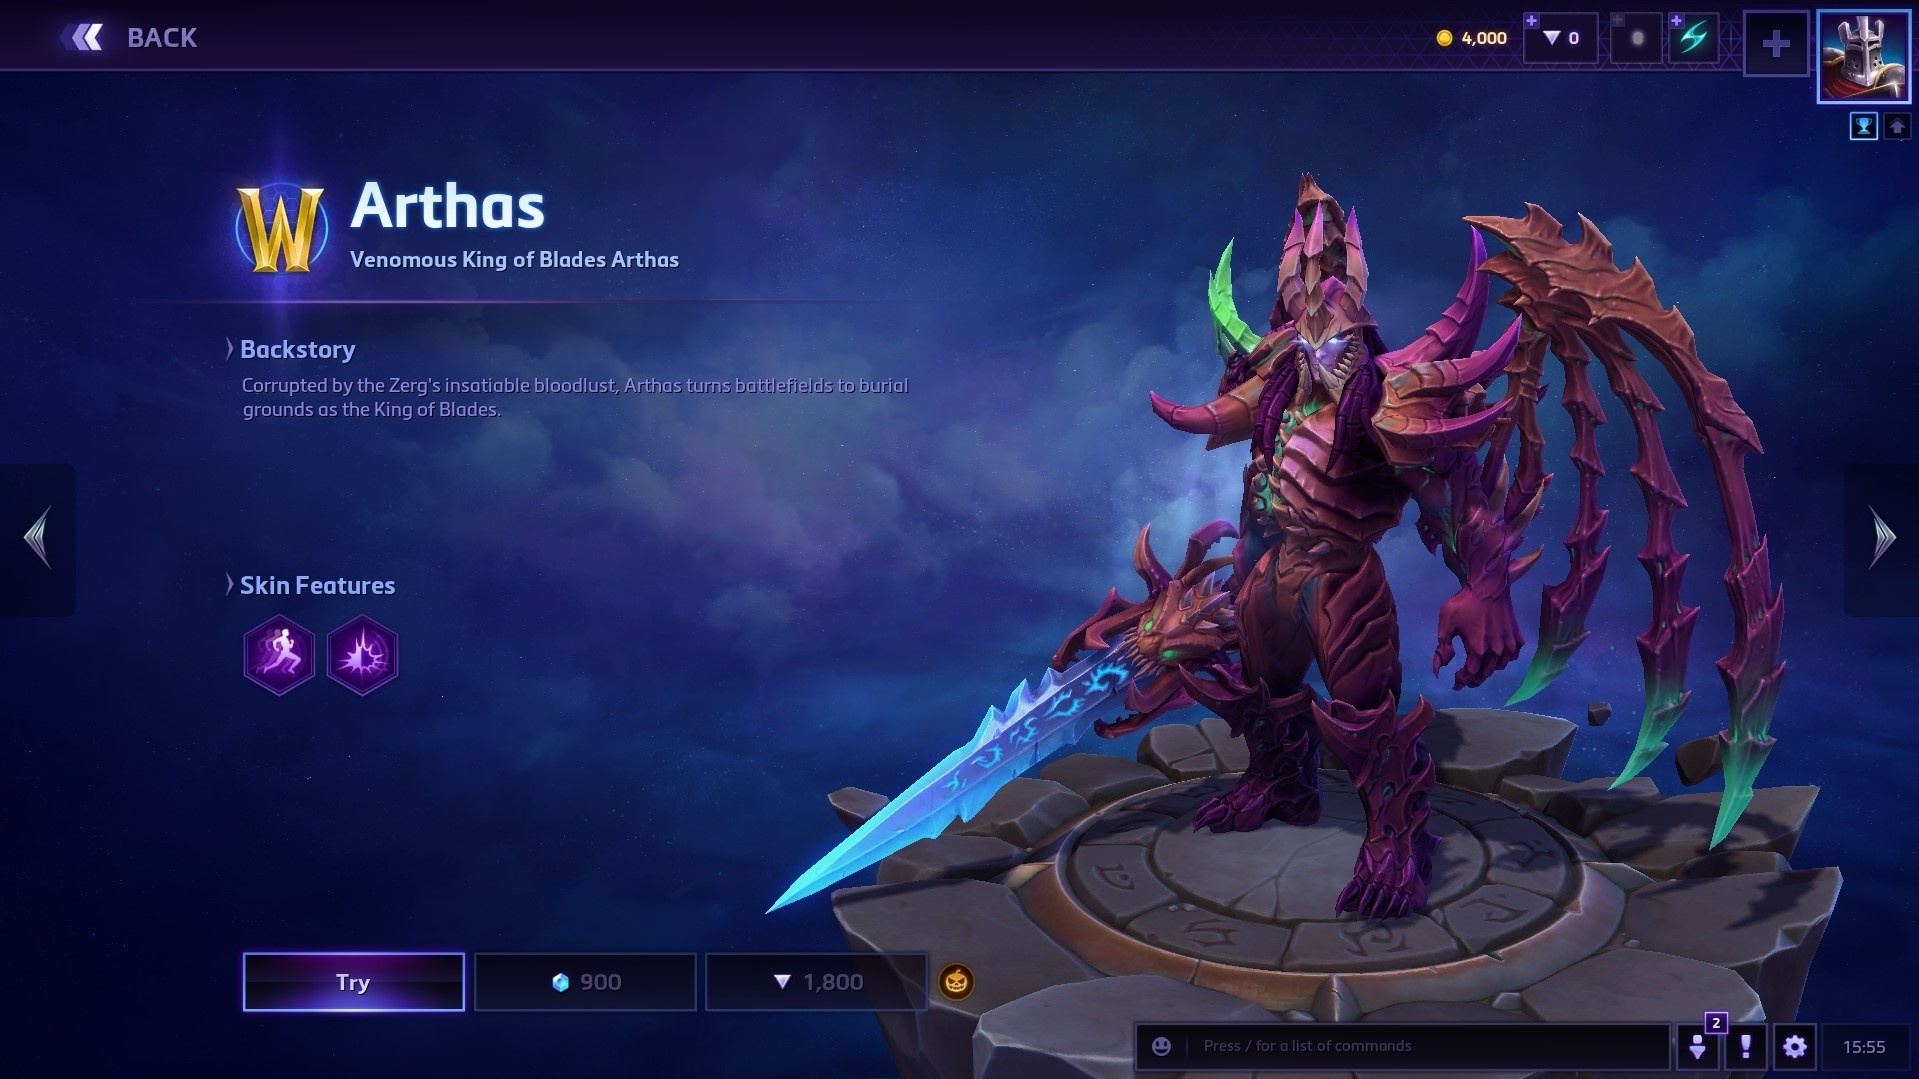 Craft Wars Heroes Of The Storm Event King Of Blades Arthas Emperor Anduin Draenei Artanis Noticias De Wowhead Artanis and his q build are both slept on. craft wars heroes of the storm event